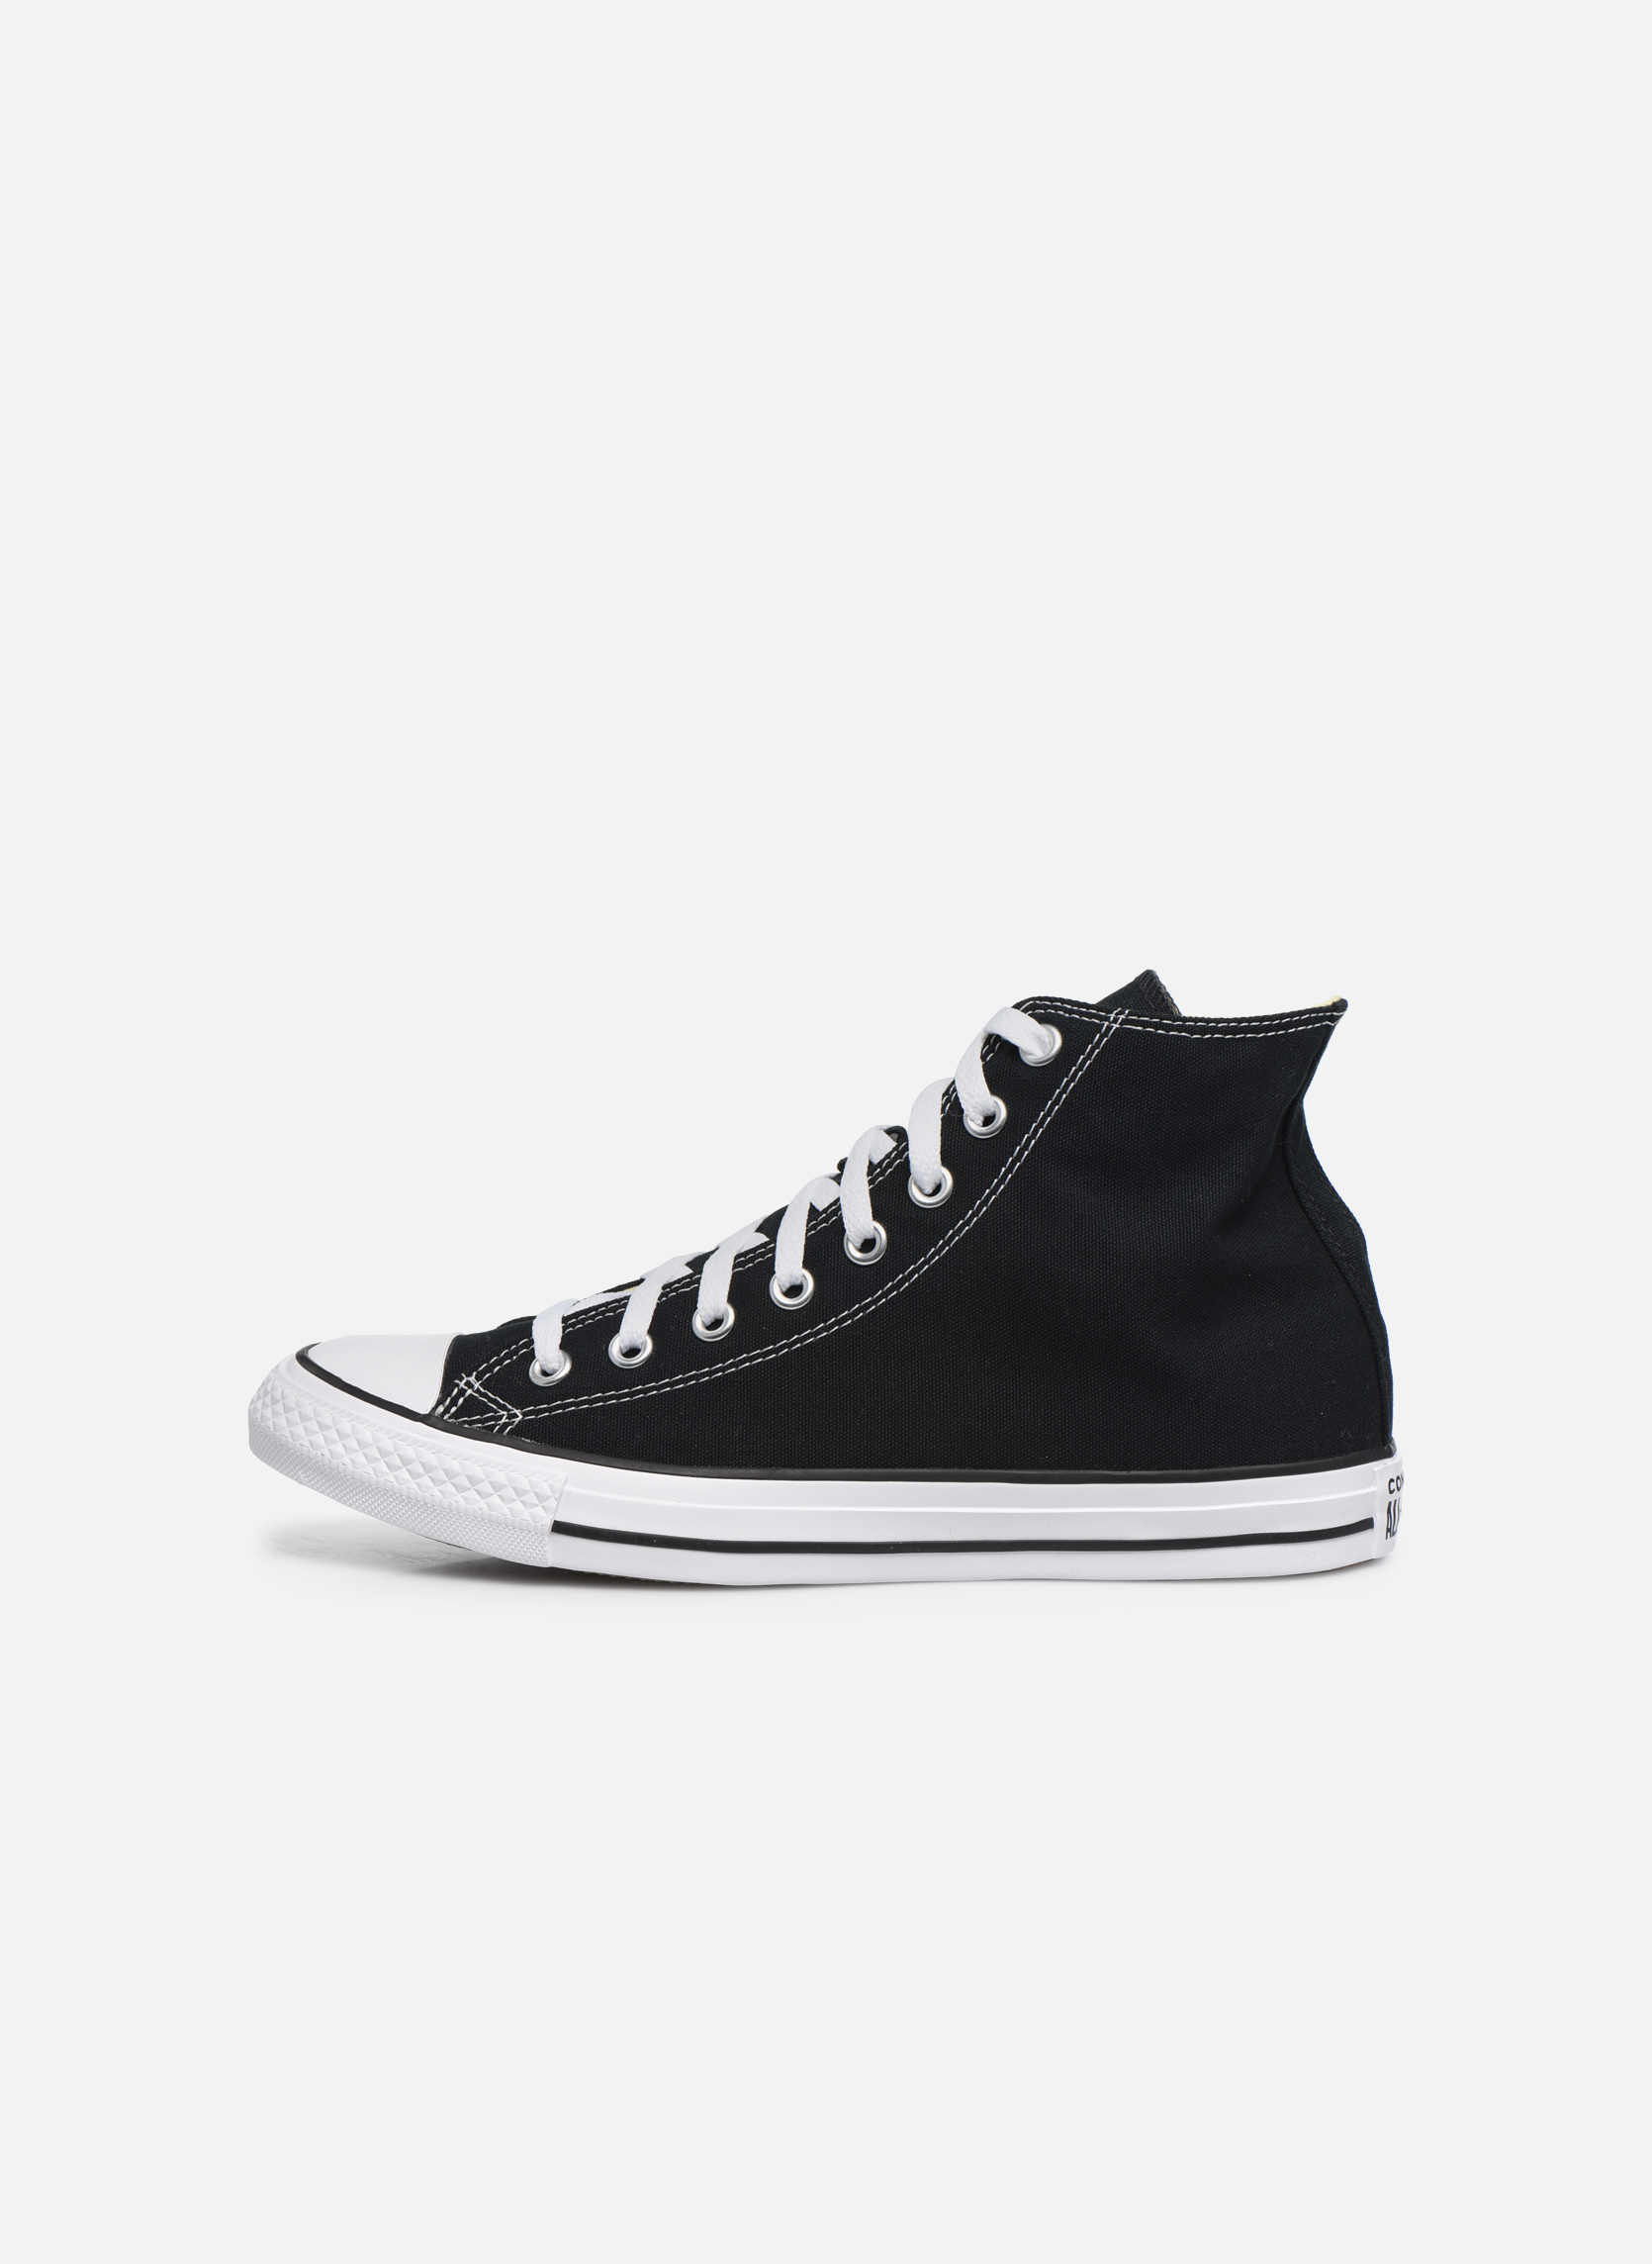 Converse All Star Blanche Basse Taille 35